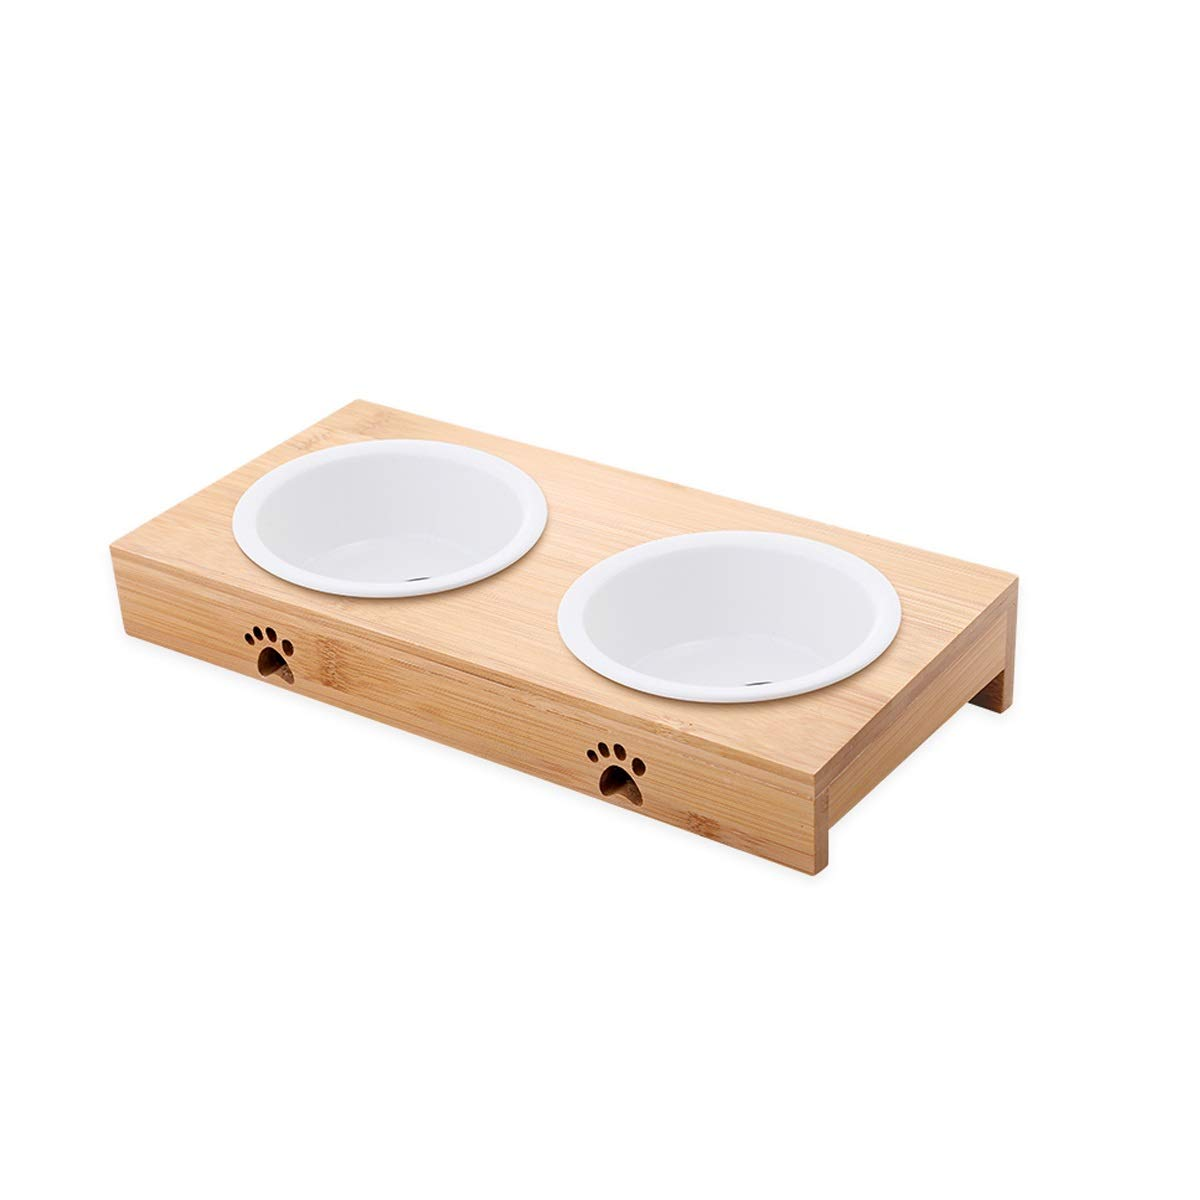 Ceramics B Ceramics B Cat Bowl Dog Bowl Double Bowl Bamboo Frame Stainless Steel Ceramic Double Bowl Bamboo Frame Size 29.3  13.8  5cm (color   Ceramics, Edition   B)